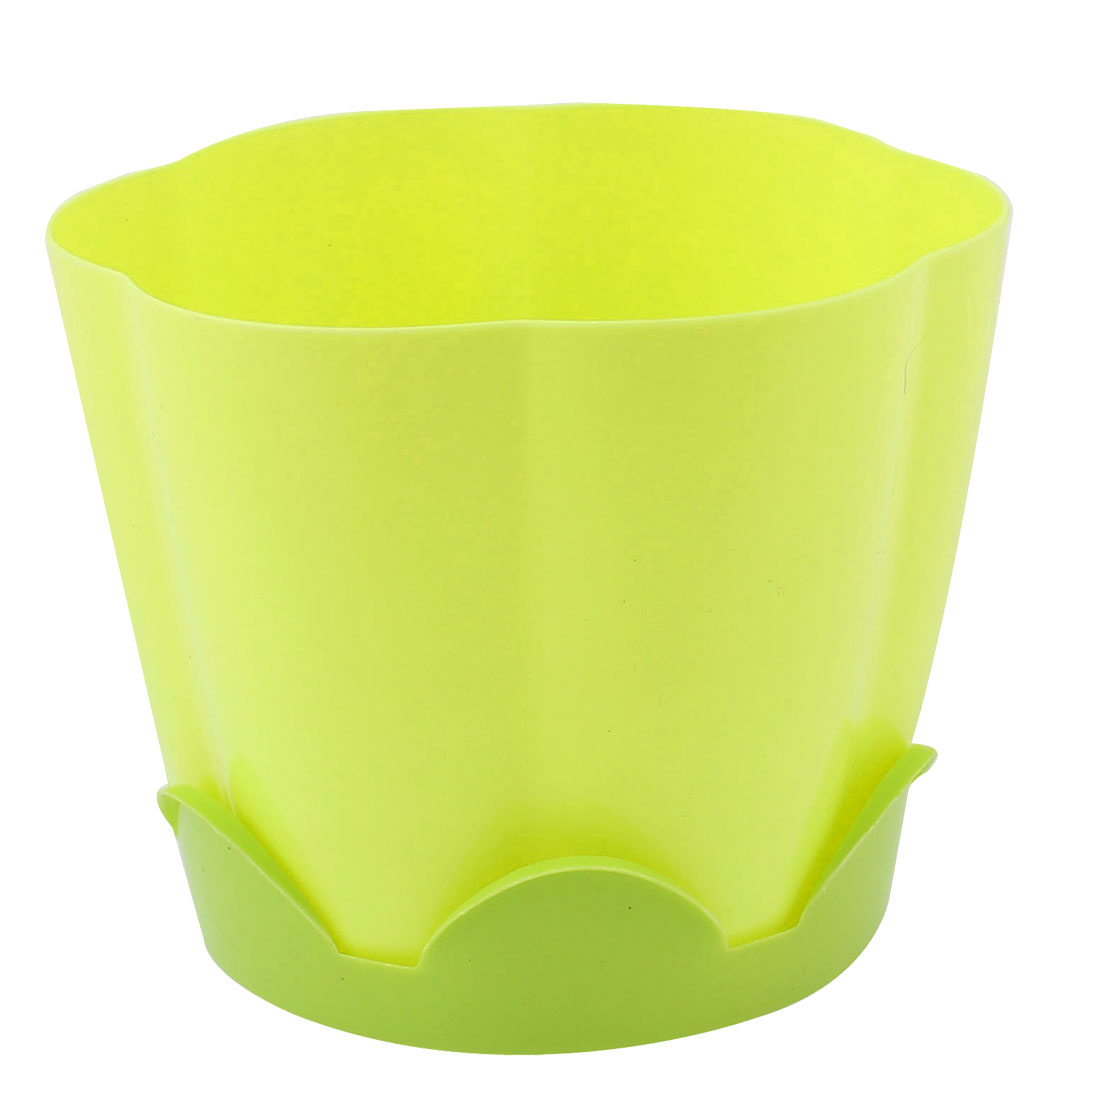 Yellow Petal Shape Resin Plant Flower Pot Planter Flowerpot Decor 13 x 10.5cm